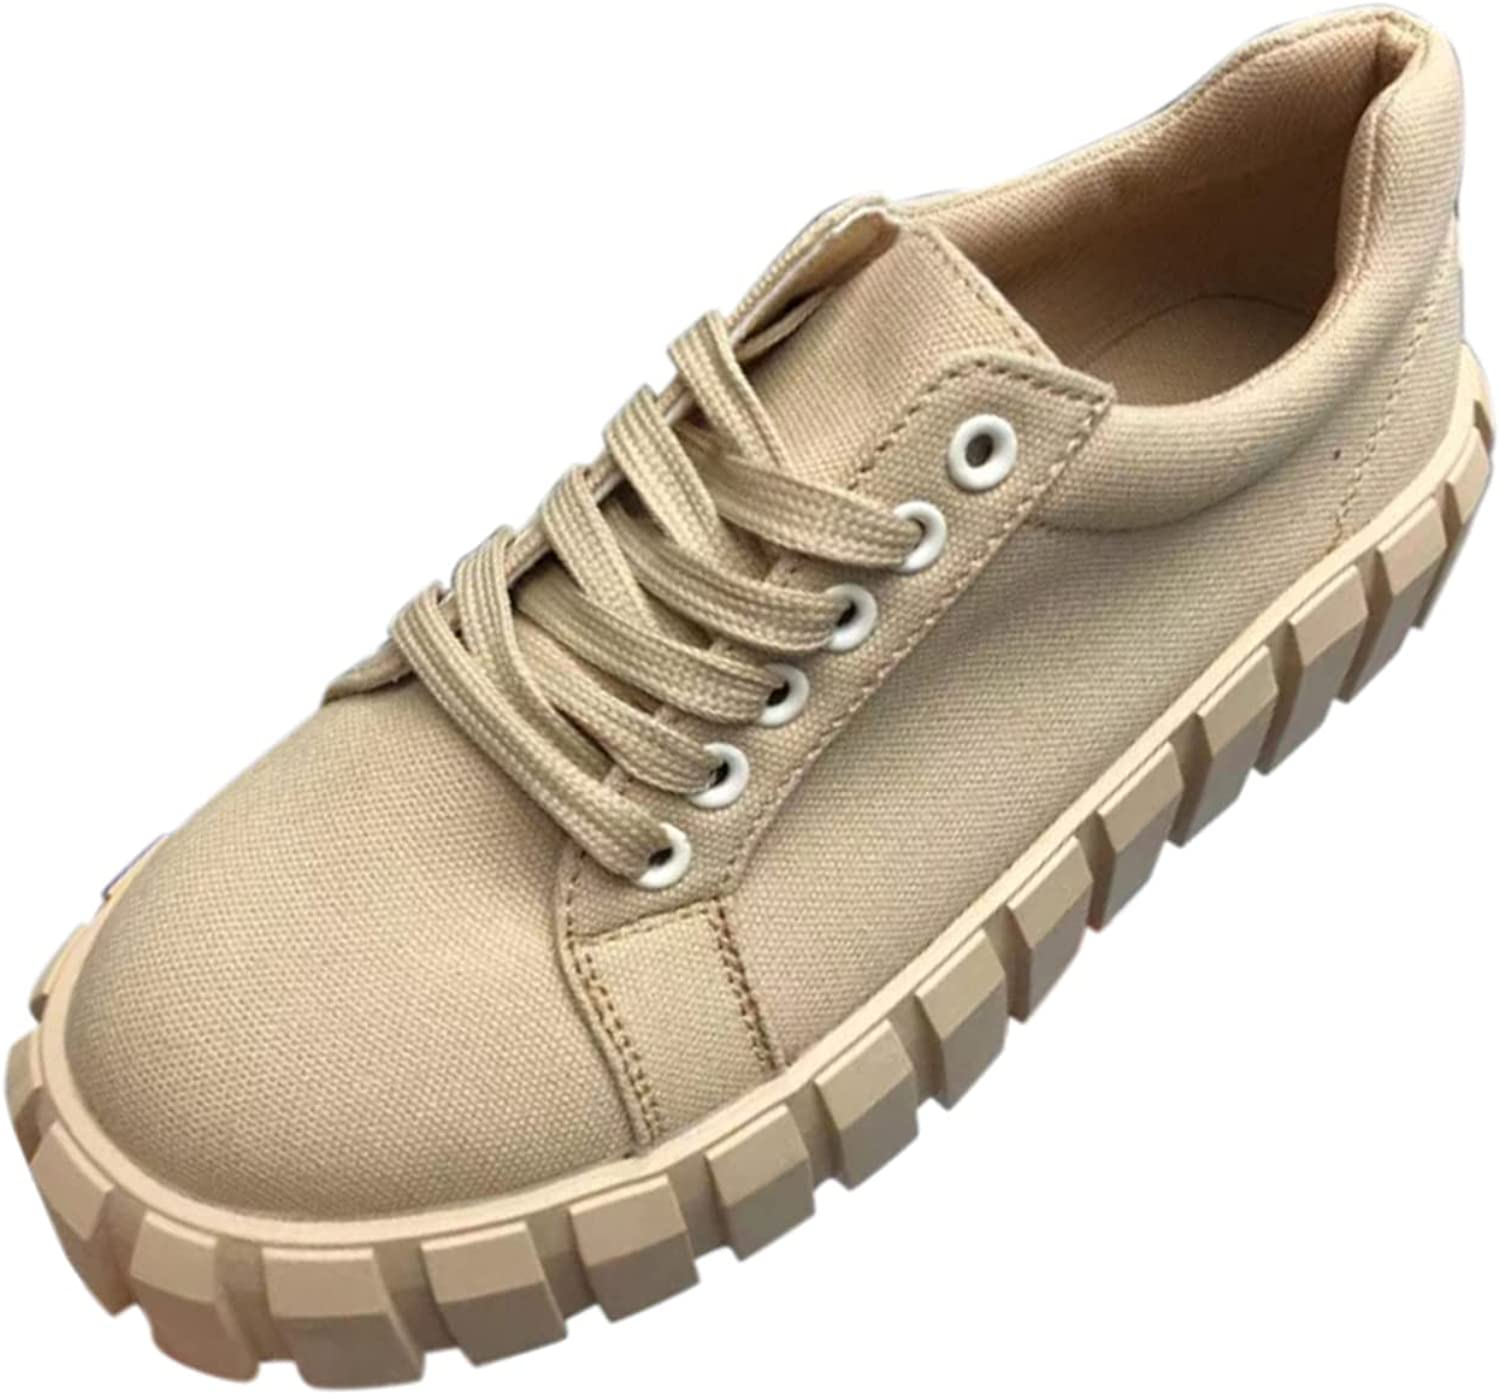 FAMOORE Casual Shoes for Women Flats Comfortable Grey Casual Shoes Casual Bowknot Shoes Casual Tennis Shoes